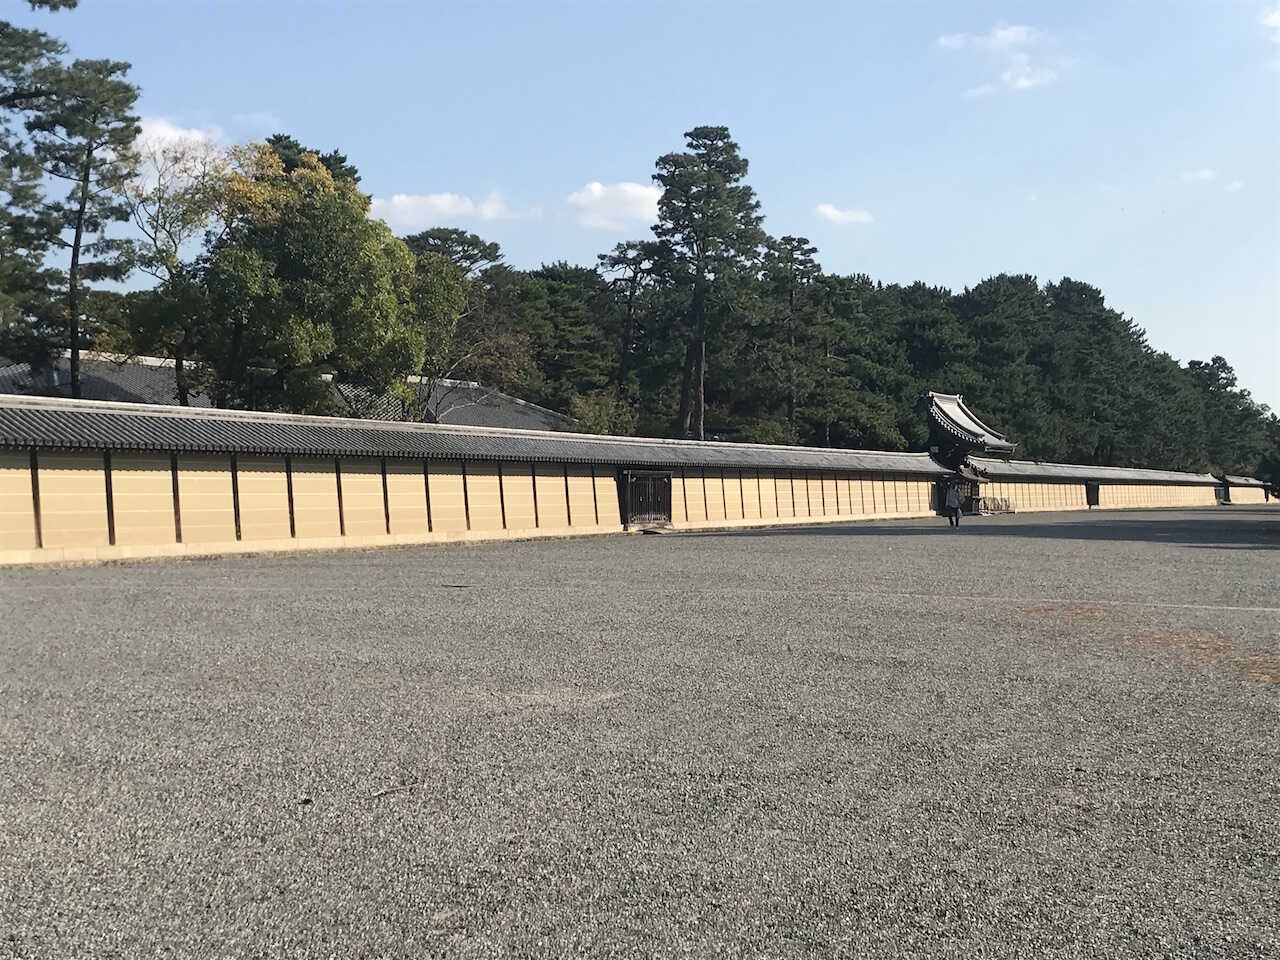 Imperial-Palace-mur